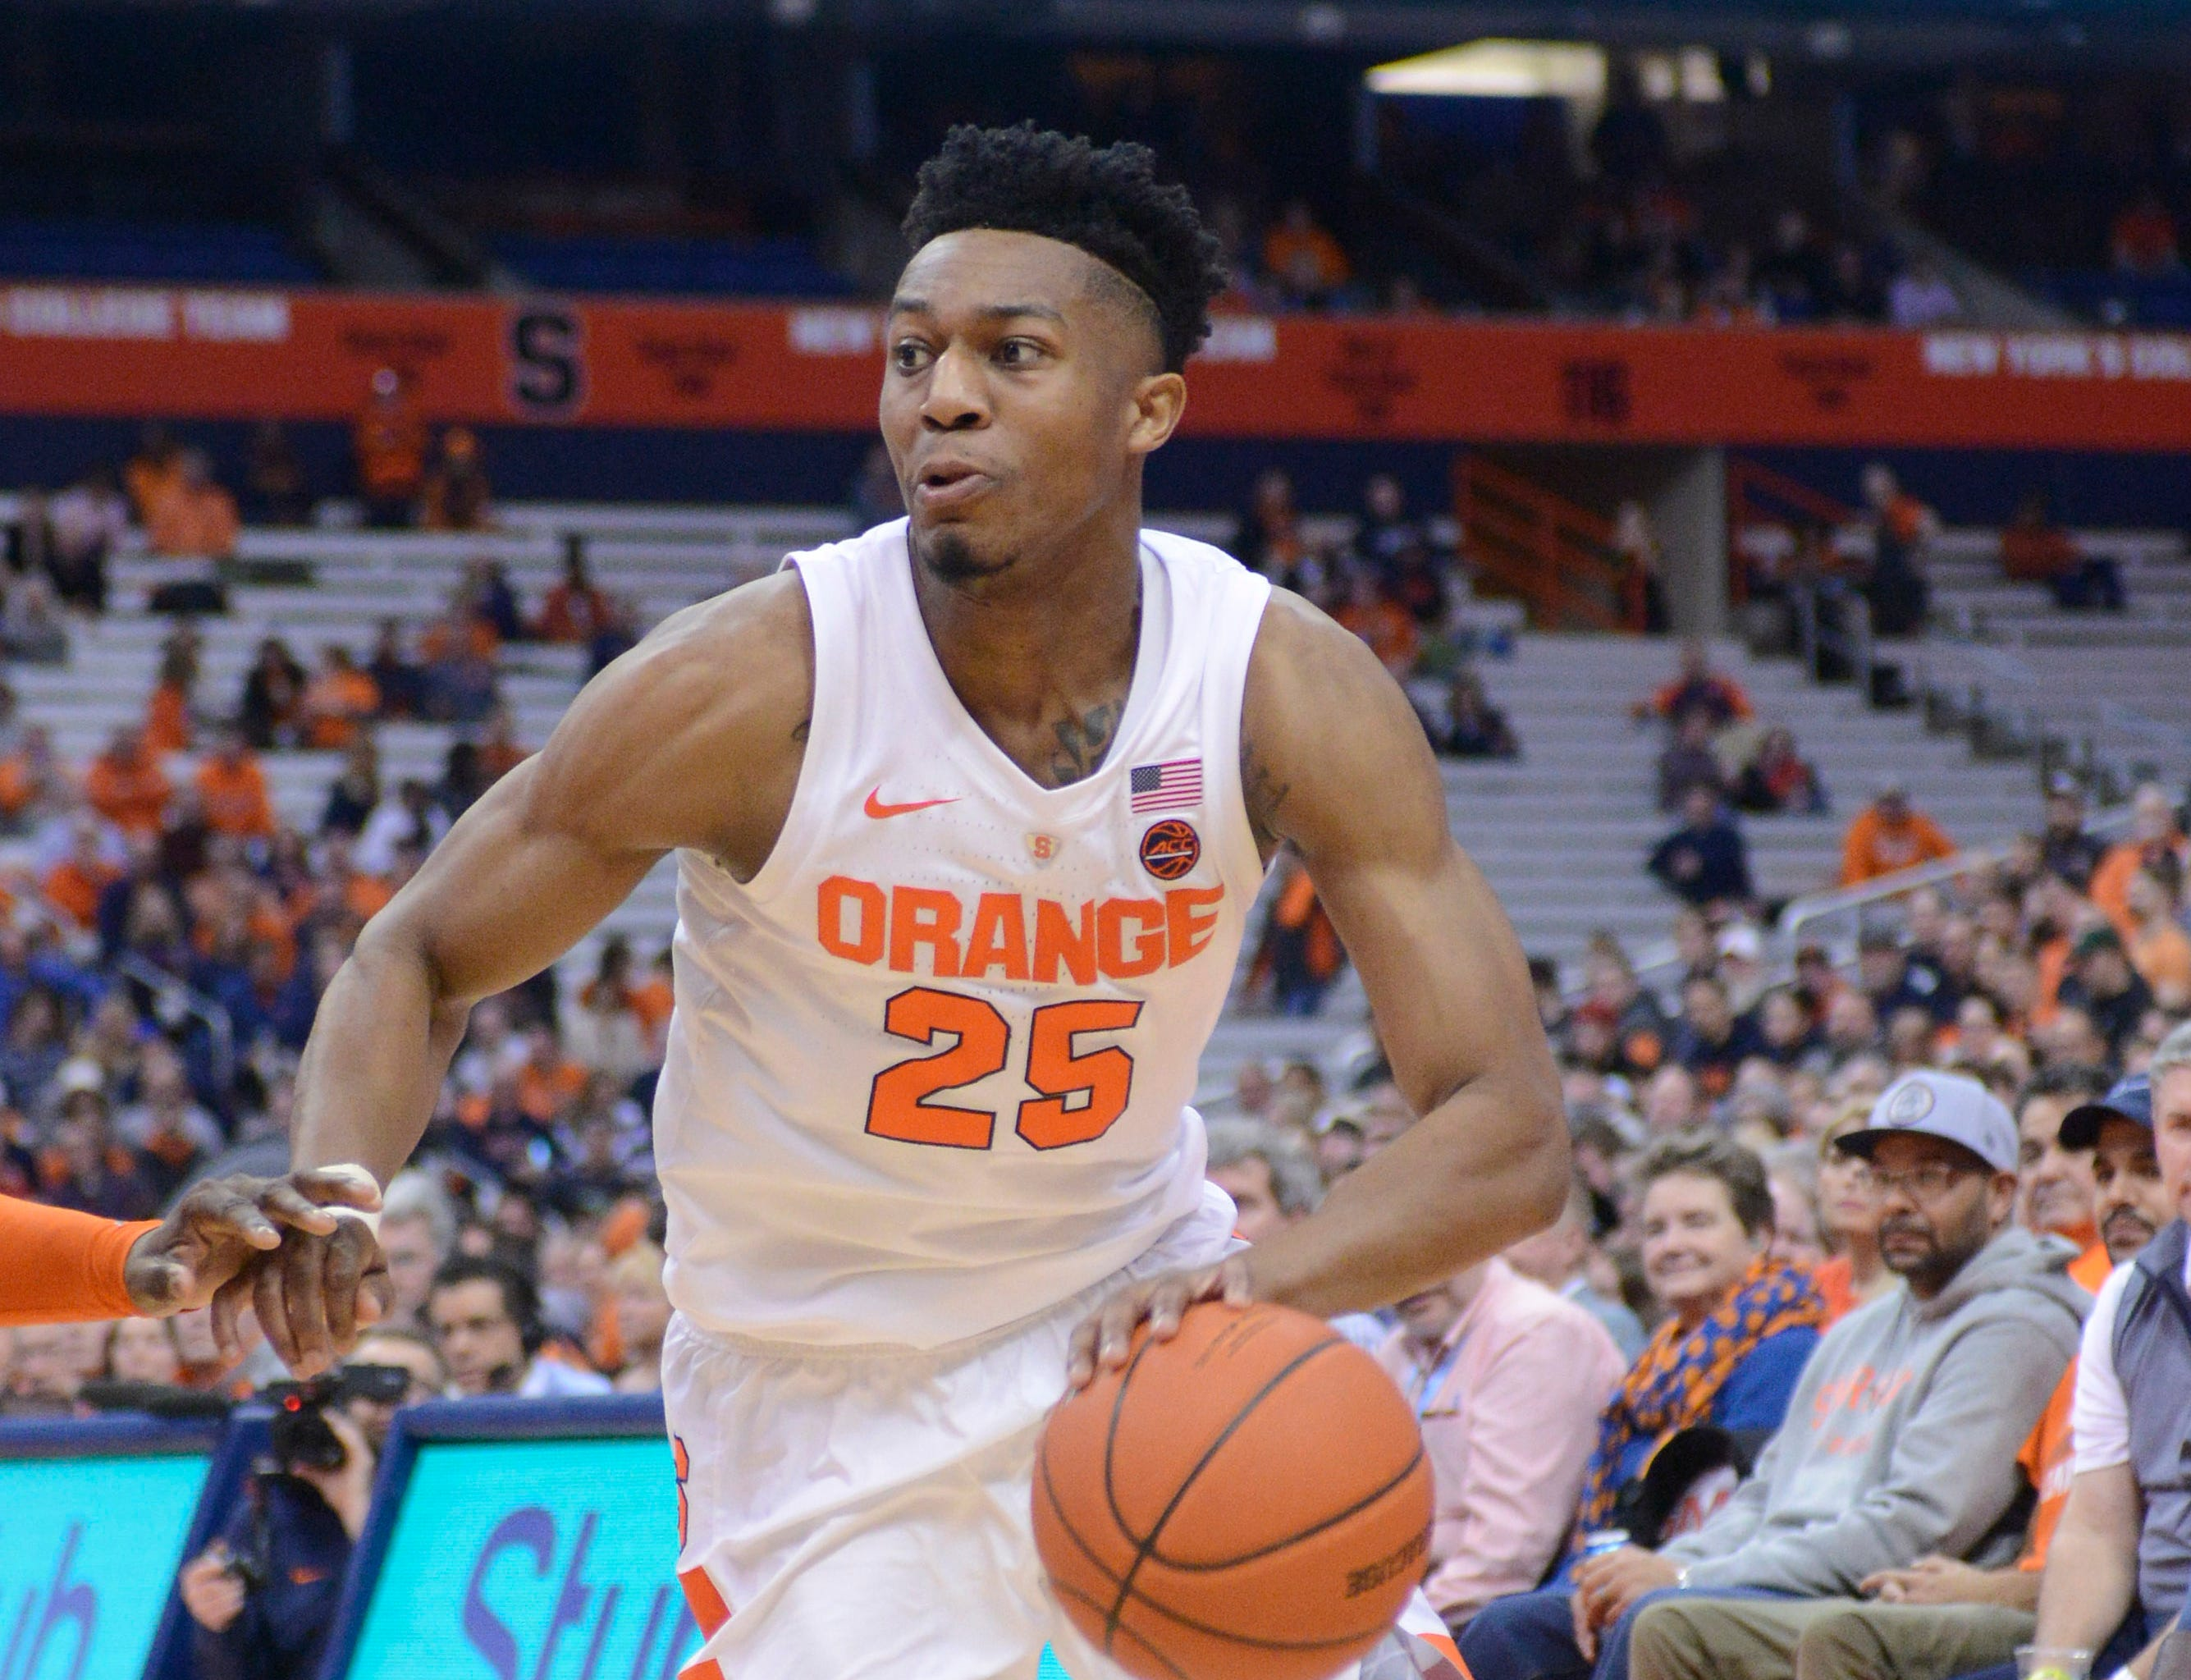 Jan 9, 2019; Syracuse, NY, USA; Syracuse Orange guard Tyus Battle (25) handles the ball during the second half against the Clemson Tigers at the Carrier Dome.